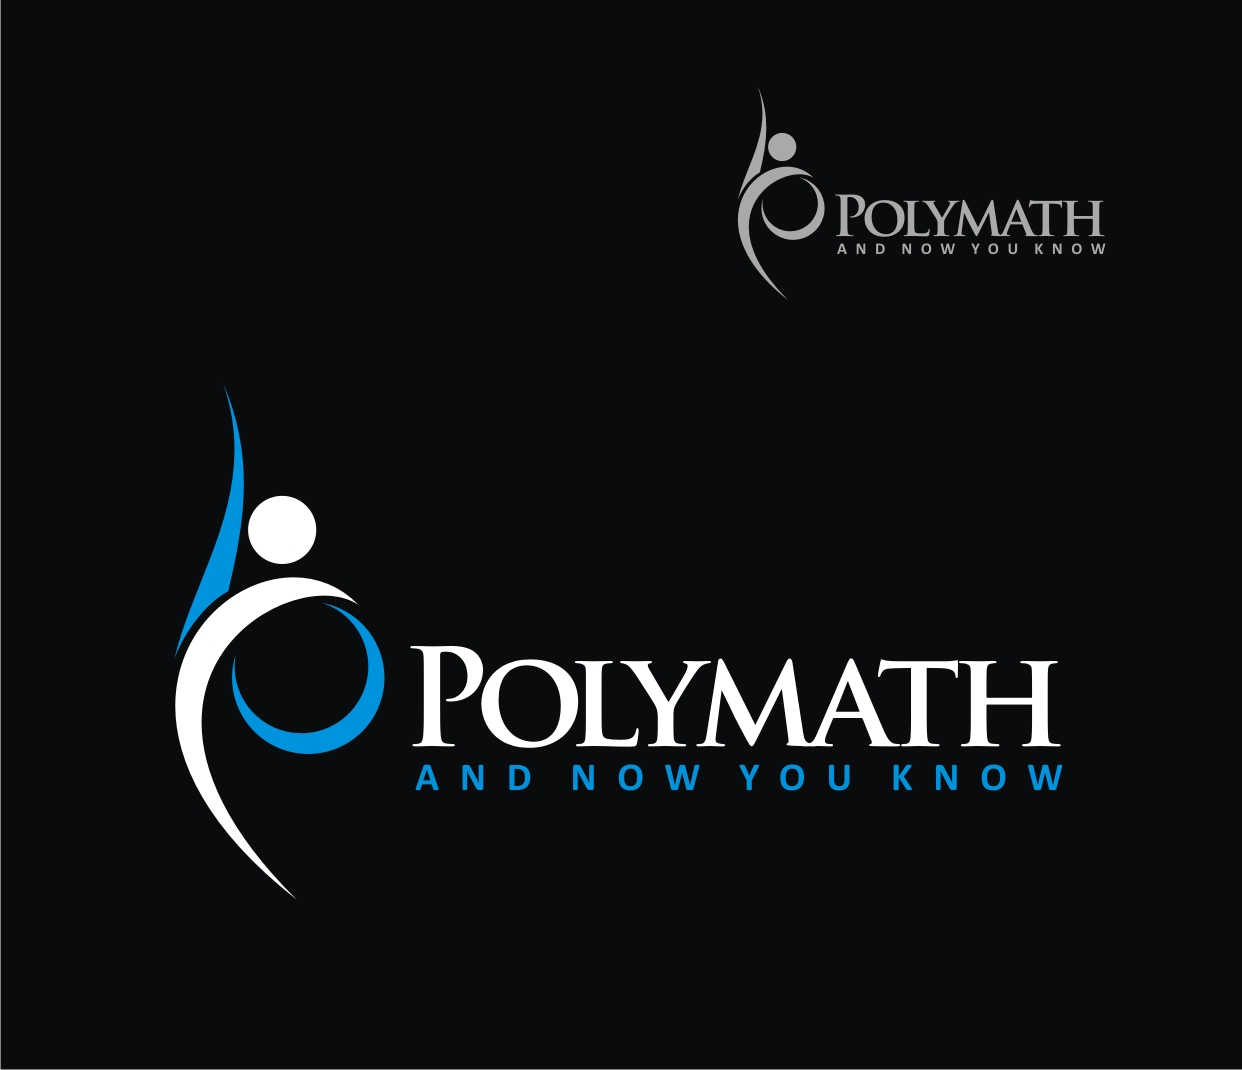 Logo Design by Reivan Ferdinan - Entry No. 12 in the Logo Design Contest Imaginative Logo Design for Polymath.